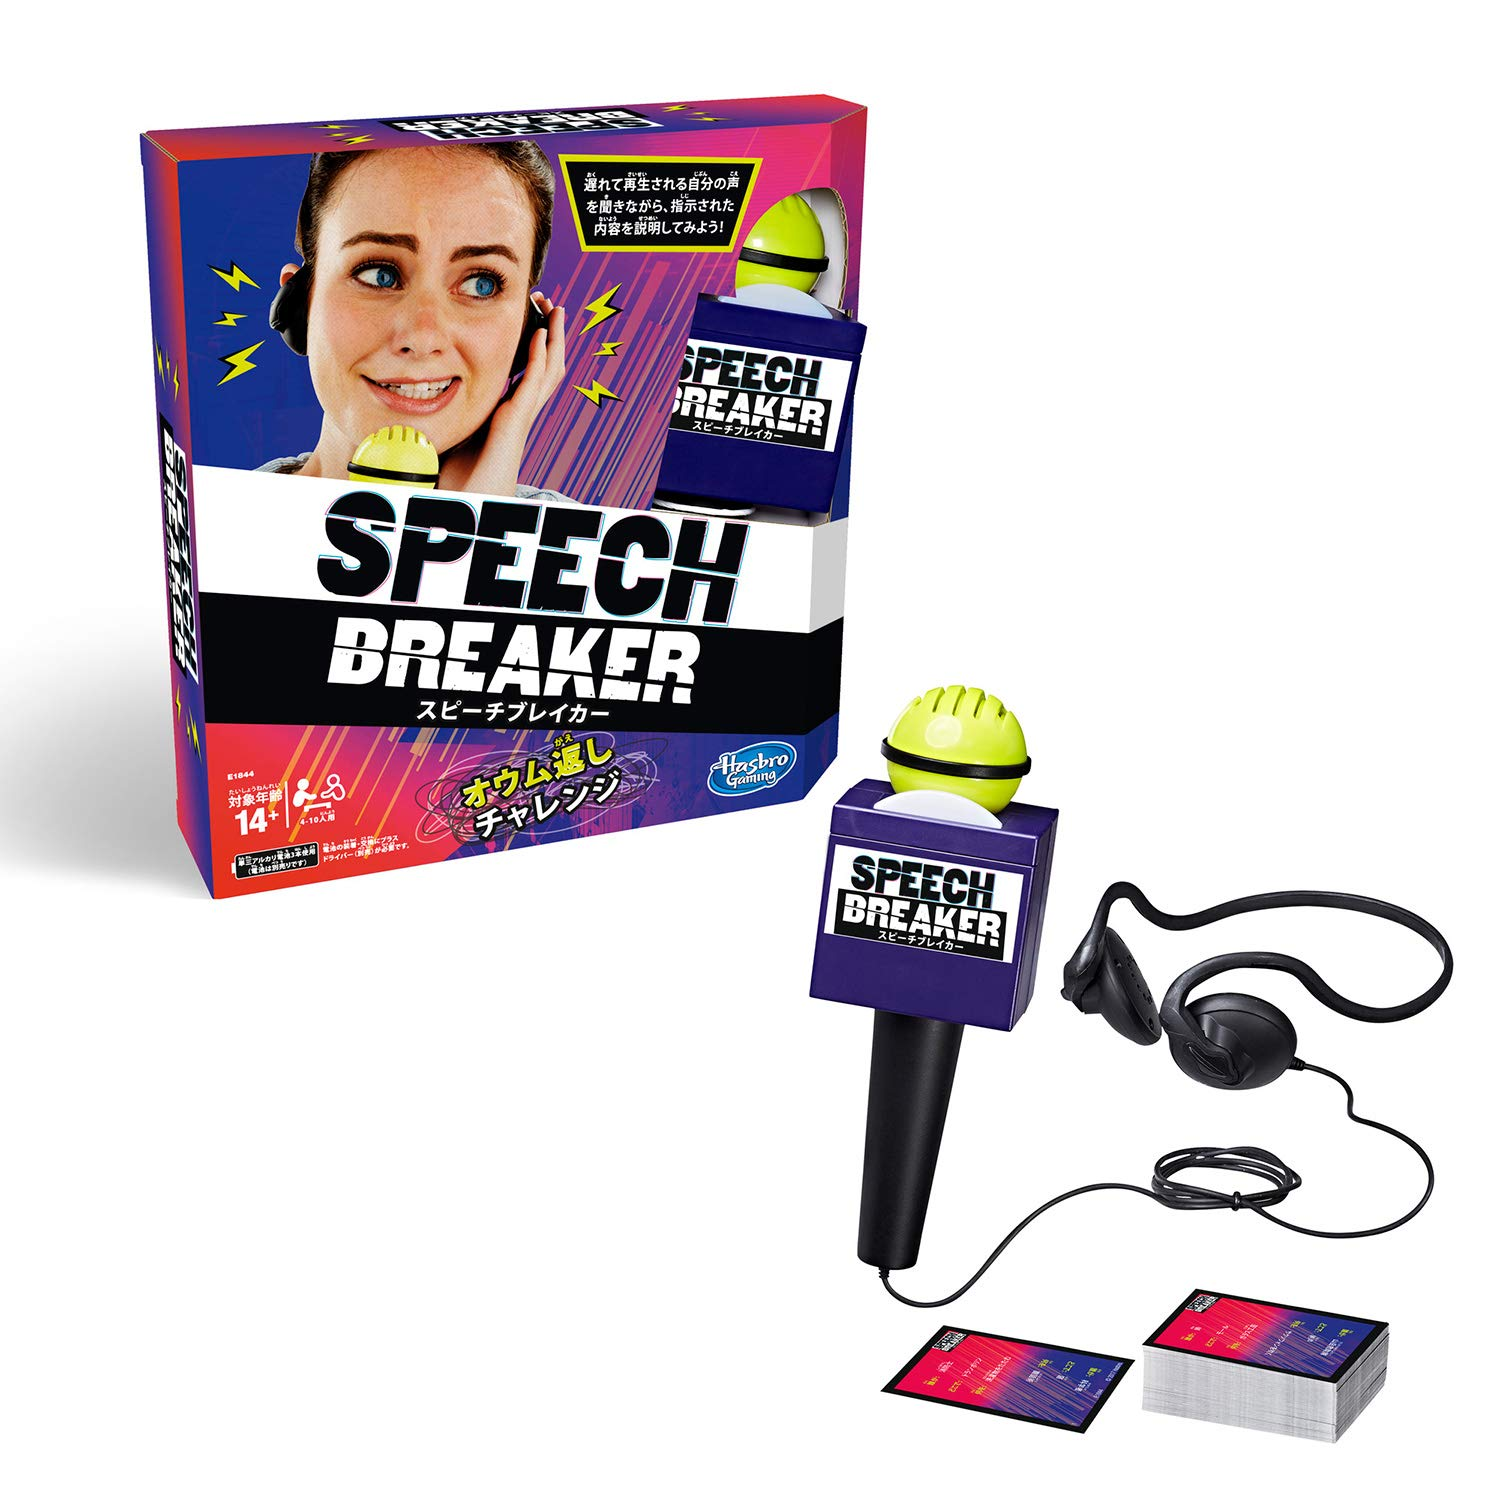 Speech Breaker Game Voice Jamming Challenge Microphone Headset Electronic Party Game Ages 14